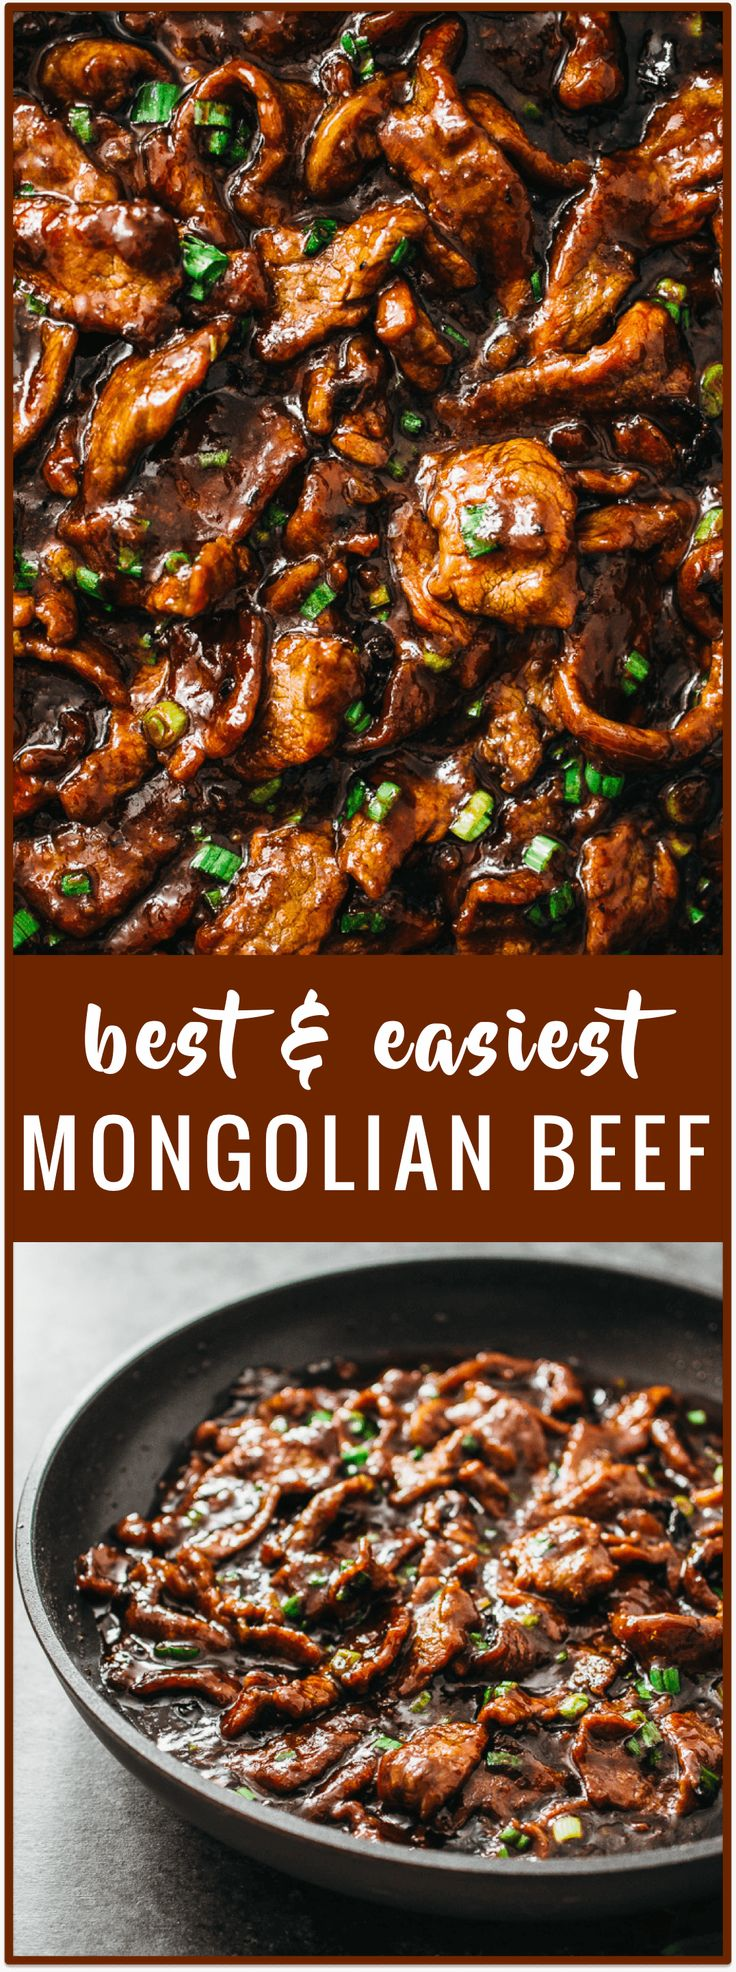 Best Mongolian beef: easy, authentic, and fast 15-minute stir-fry recipe with te…